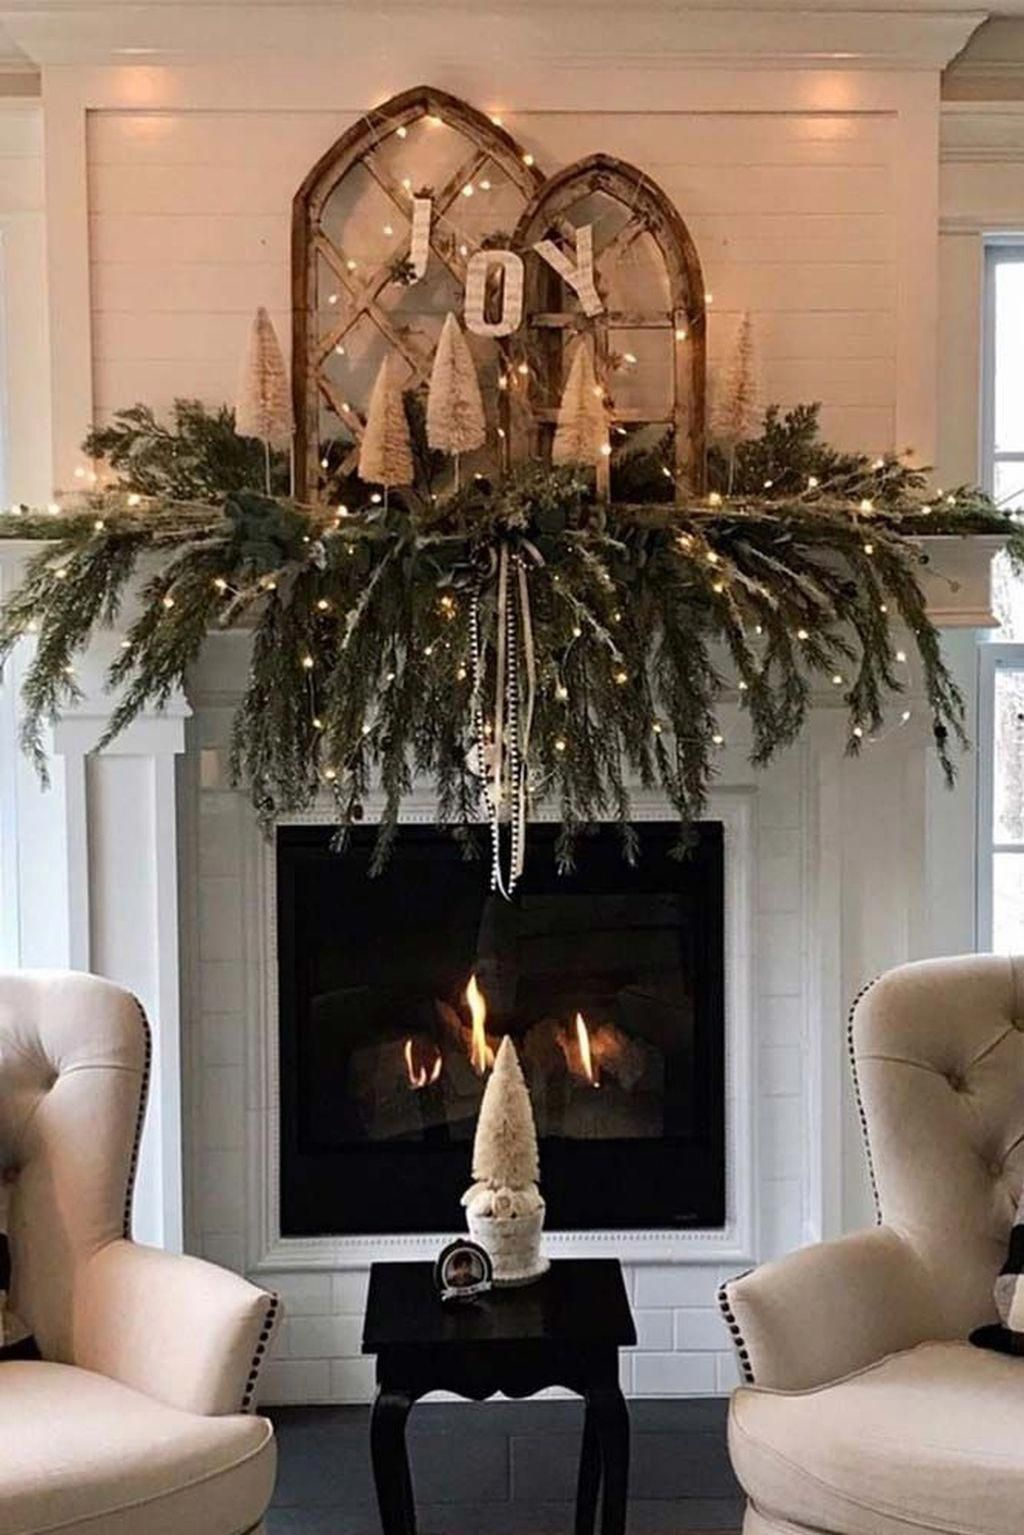 35 Popular Fireplace Mantel Decor Best For This Winter Most People Only Think About Fireplace Ma In 2020 Christmas Fireplace Decor Christmas Fireplace Christmas Home